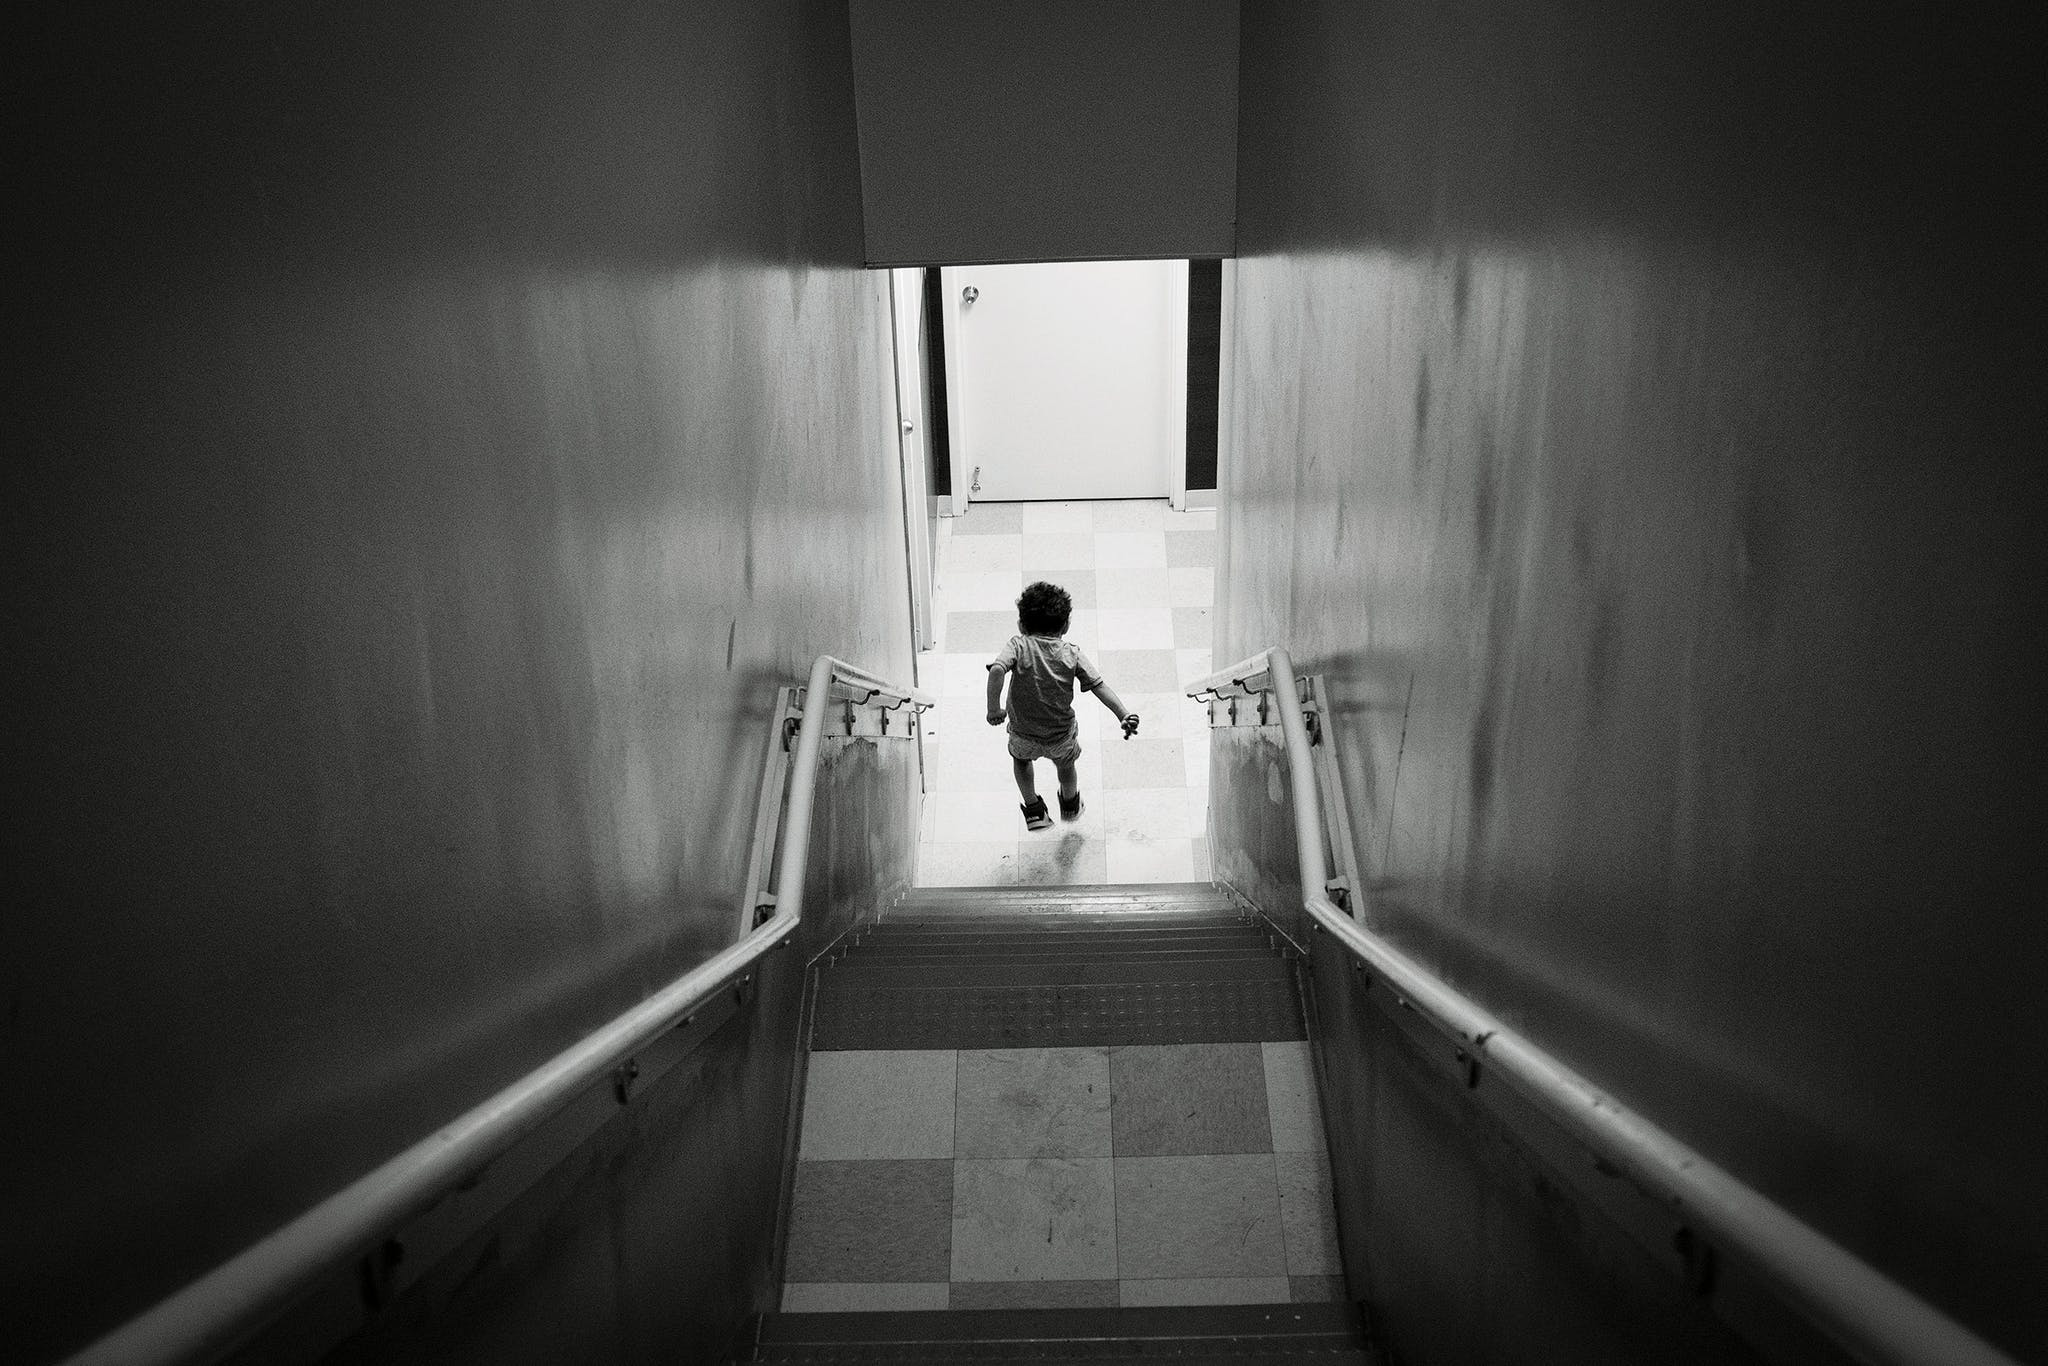 A young boy jumps down a stairwell on the way to the shelter's cafeteria after lunch is announced over the intercom.